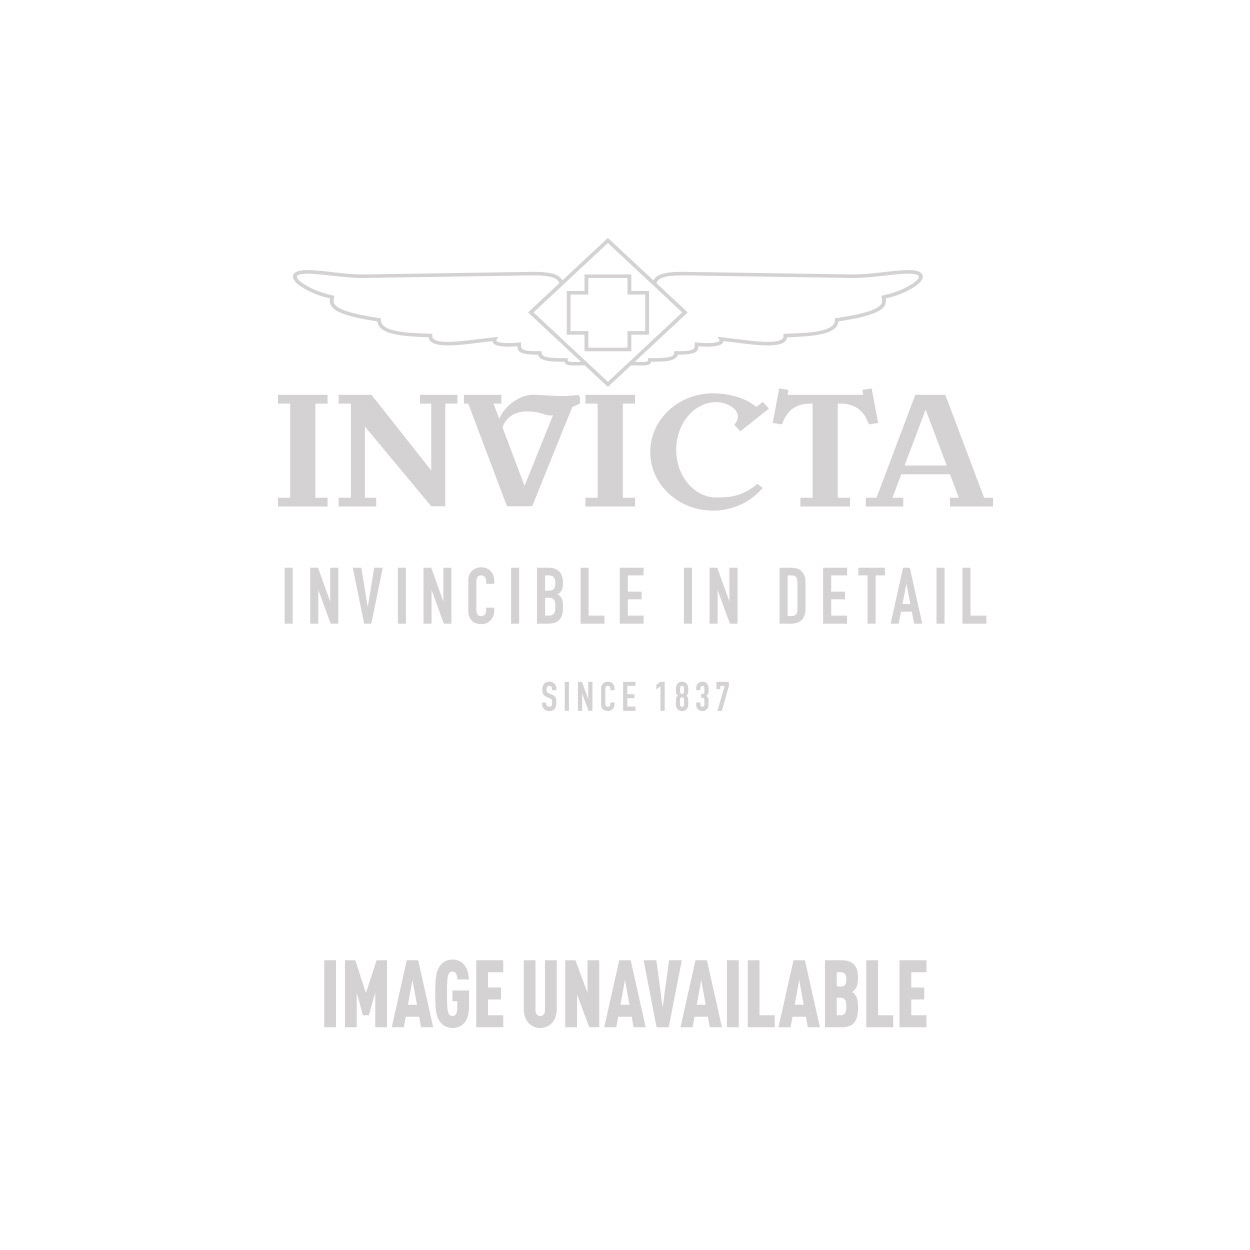 Invicta Sea Base Swiss Made Quartz Watch - Rose Gold case with Rose Gold, Black tone Stainless Steel, Polyurethane band - Model 18000